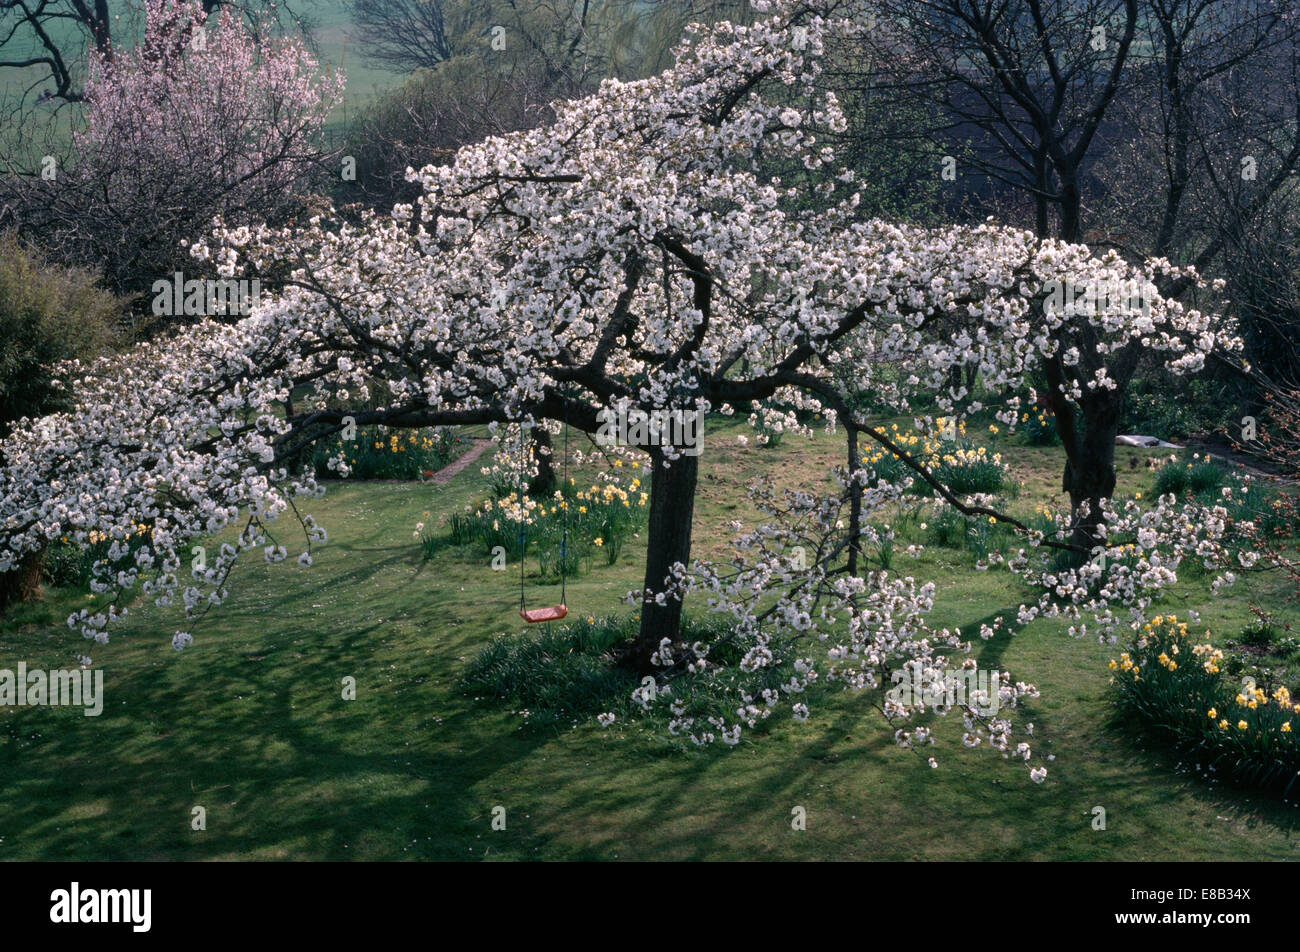 Prunus Hokusai' growing on grass in natural Spring garden - Stock Image